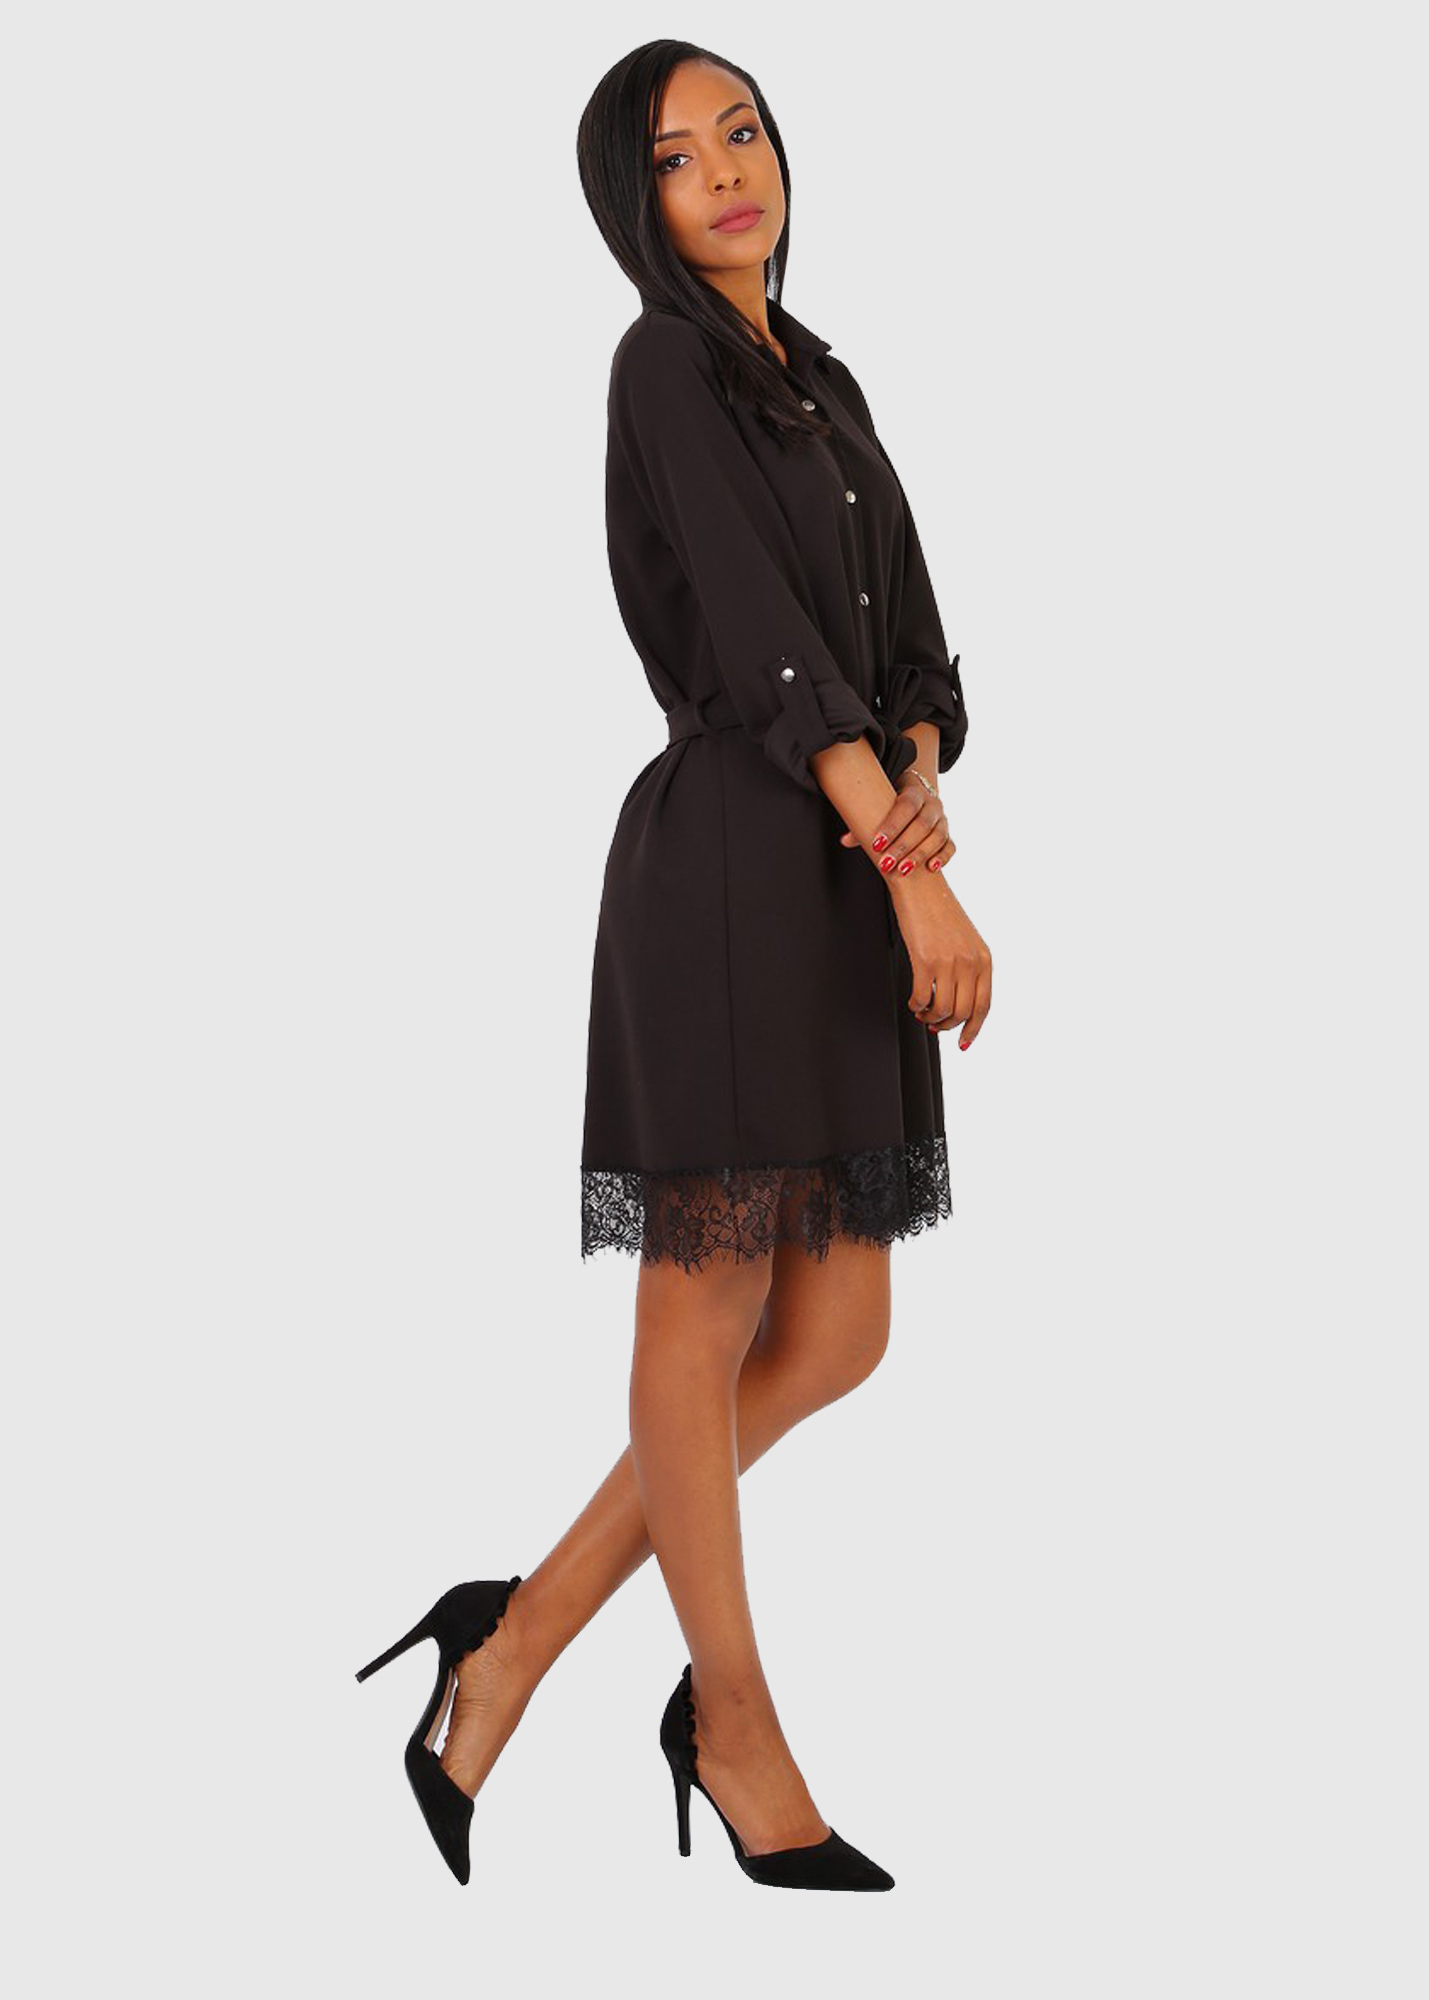 Photo №2 Nunziella italian black shirt dress